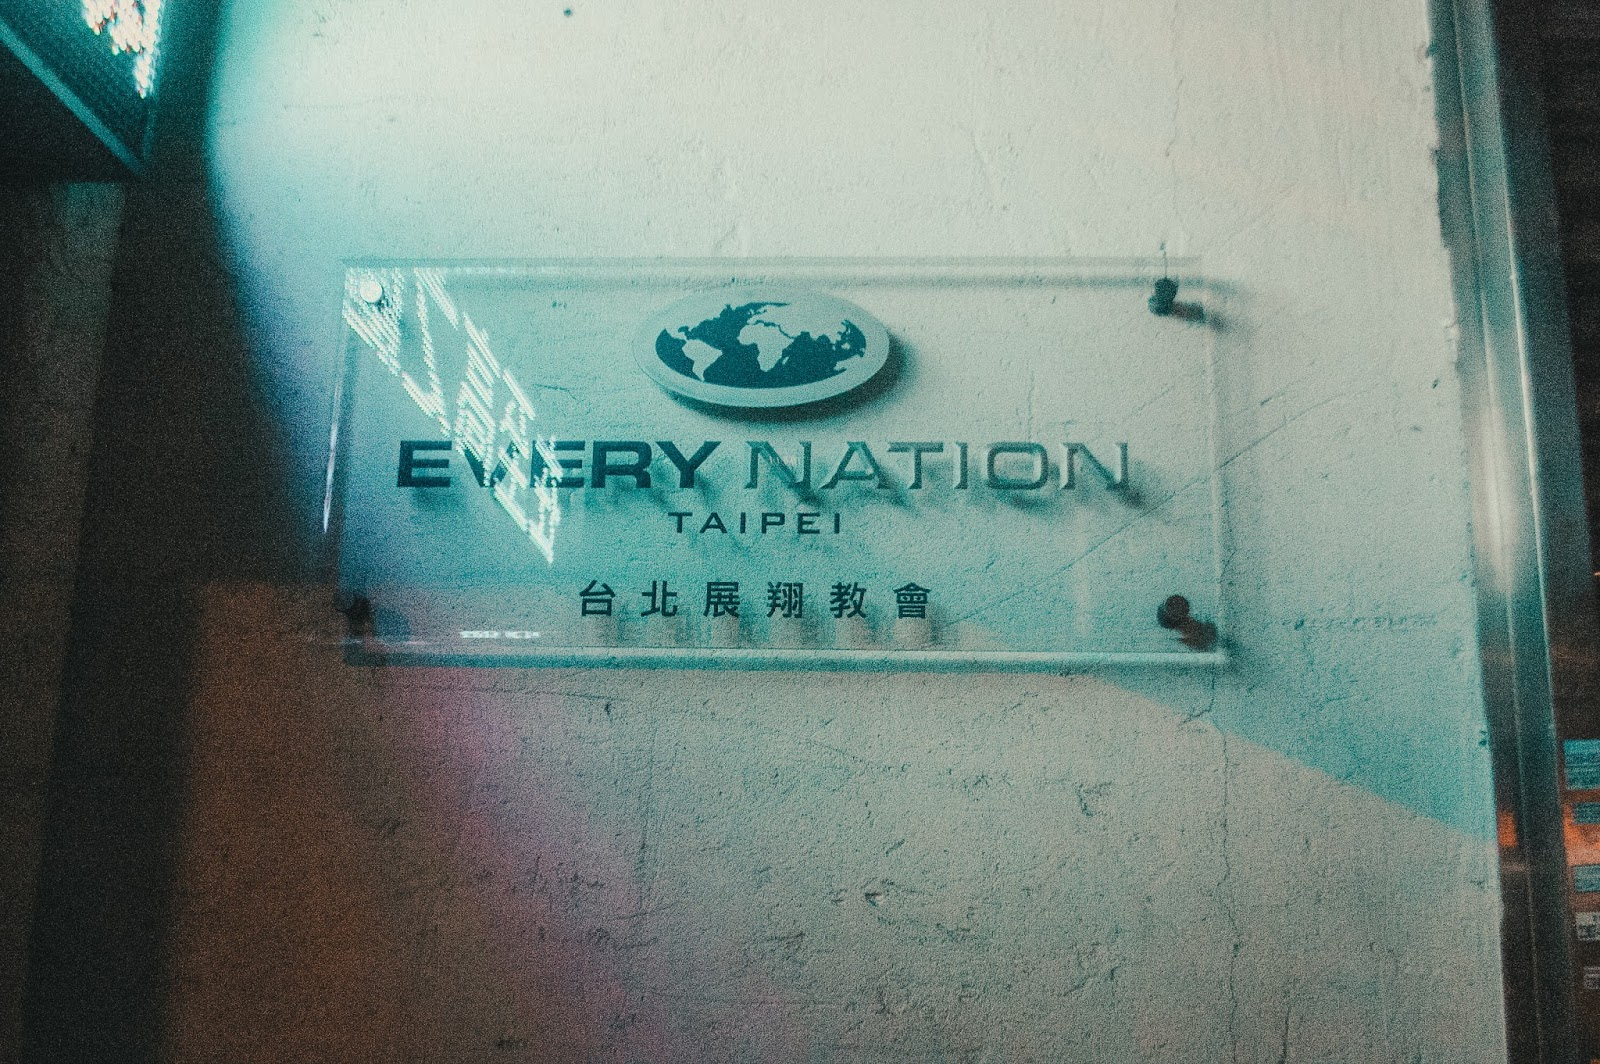 Every Nation Taipei